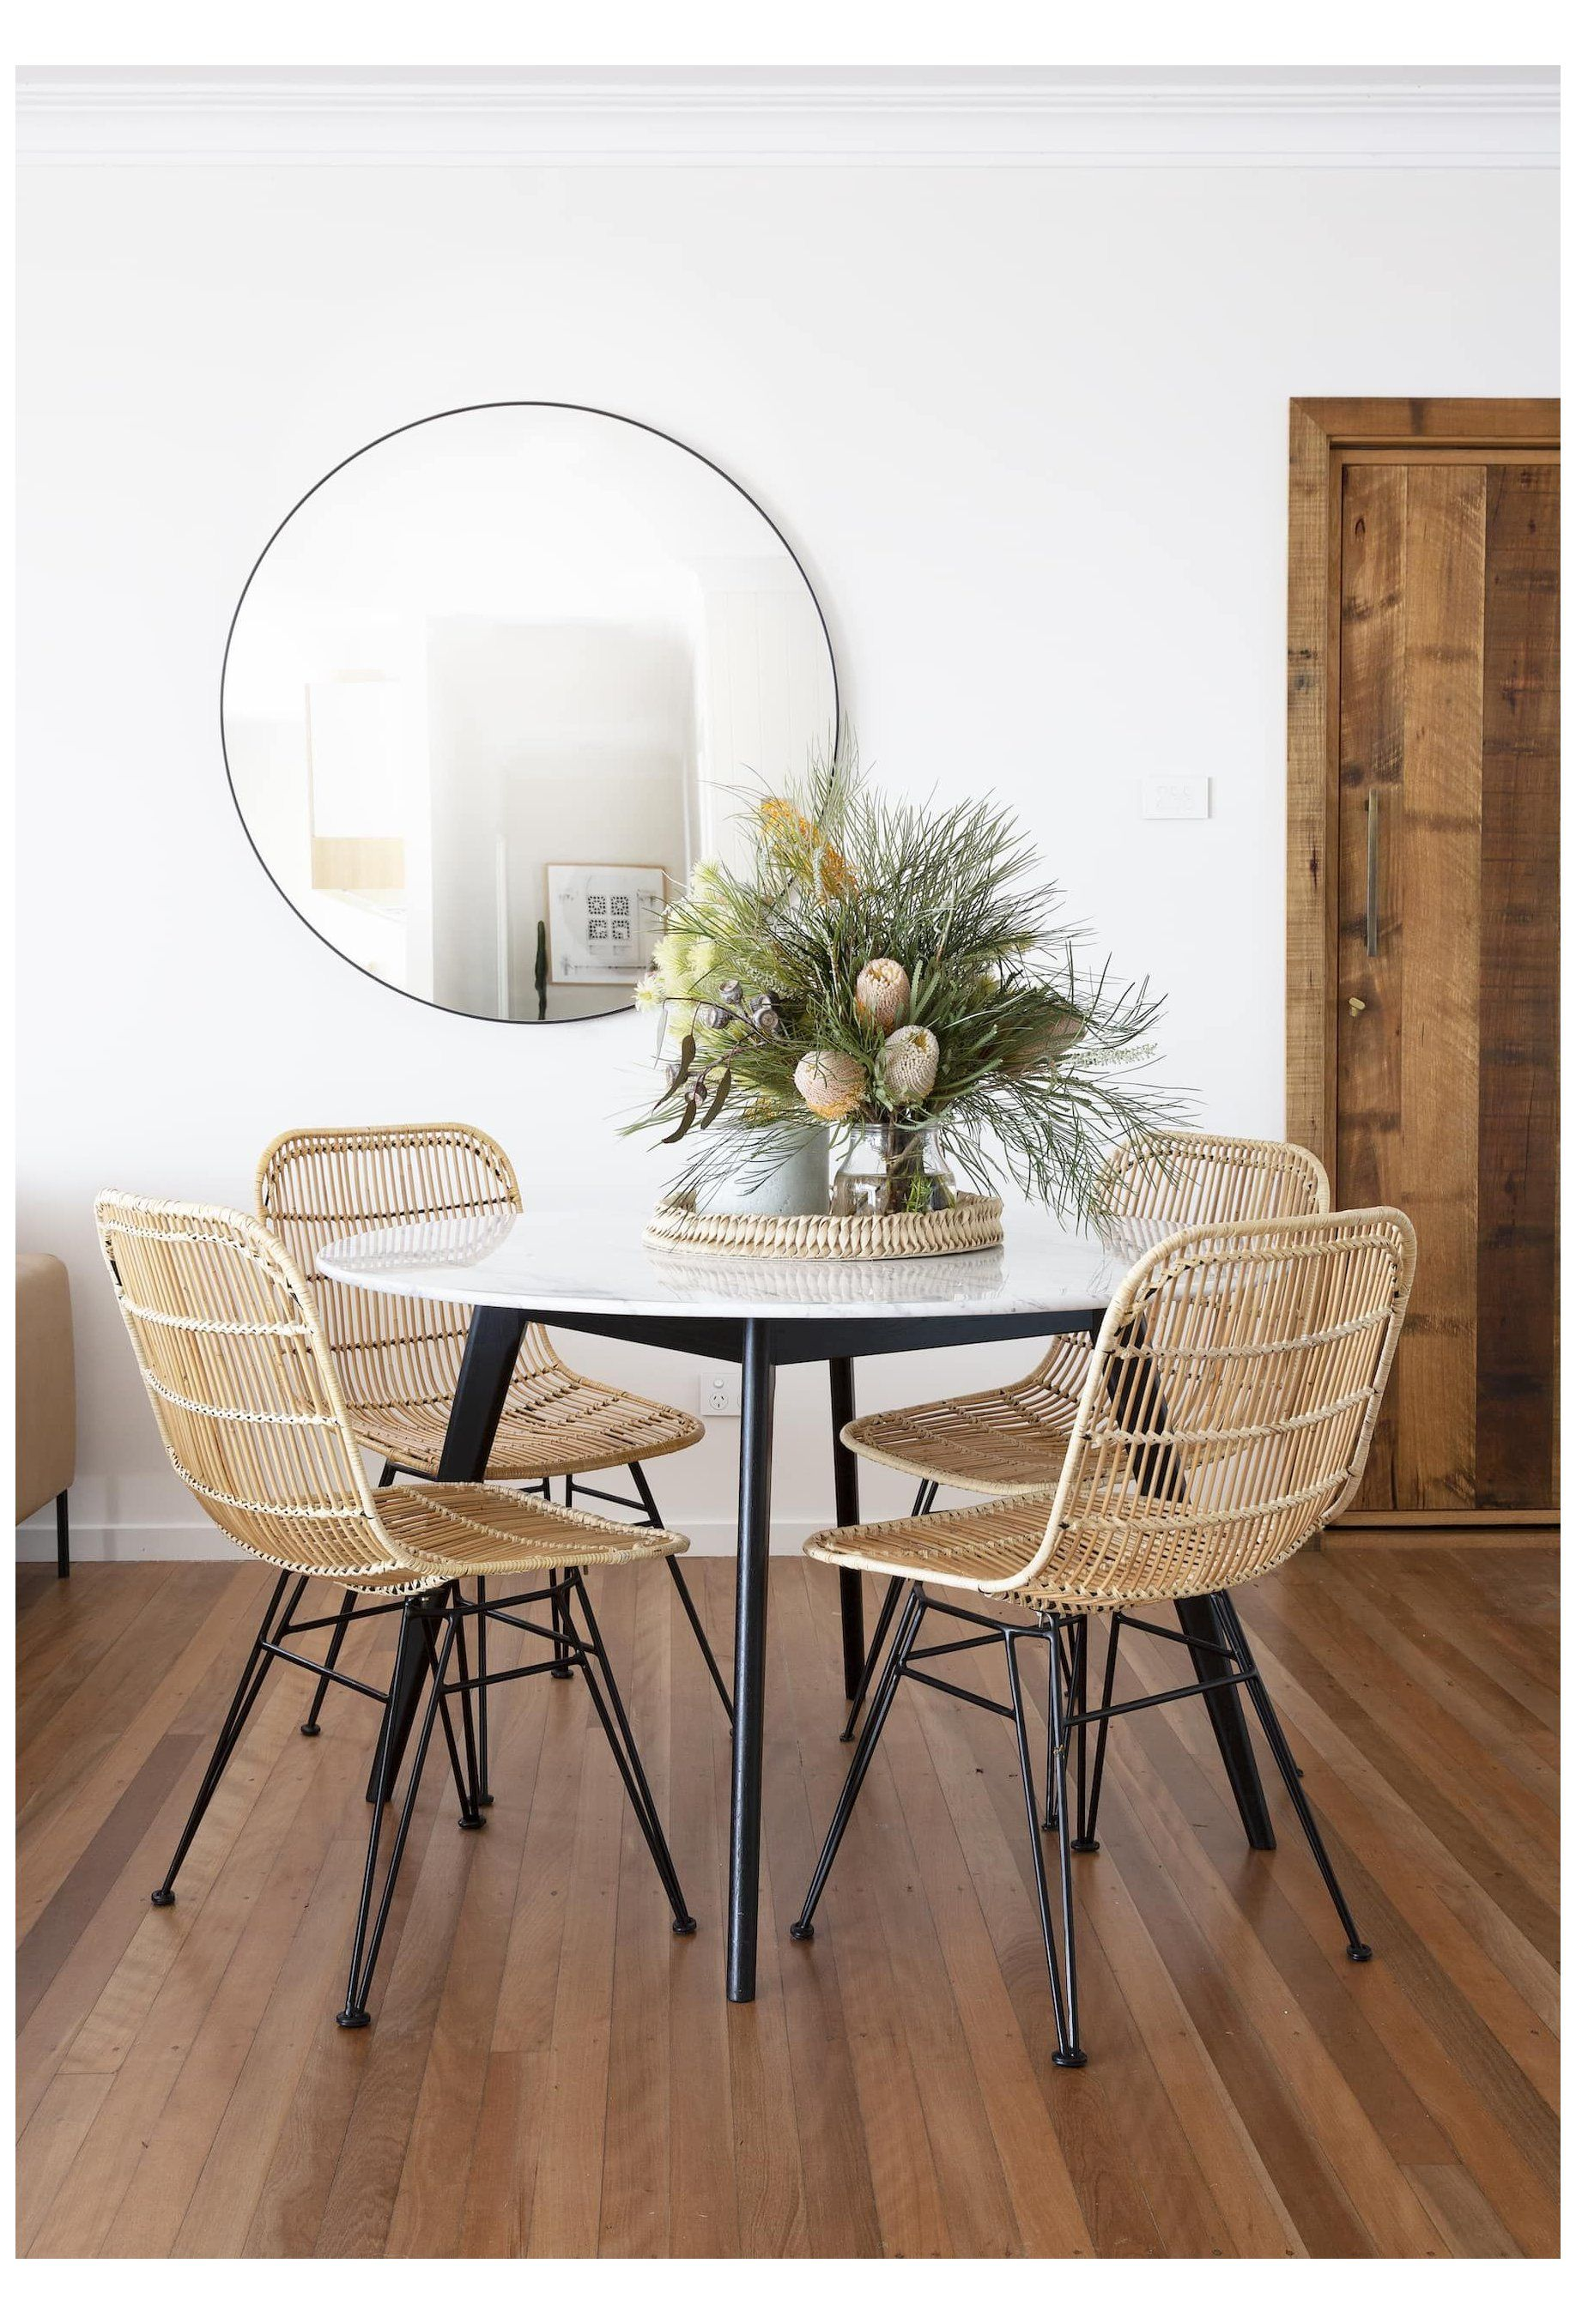 Decorating Ideas For All Dining Table Shapes Round Dining Table Styling Rounddiningtab Marble Top Dining Table Mirror Dining Room Dining Table Centerpiece